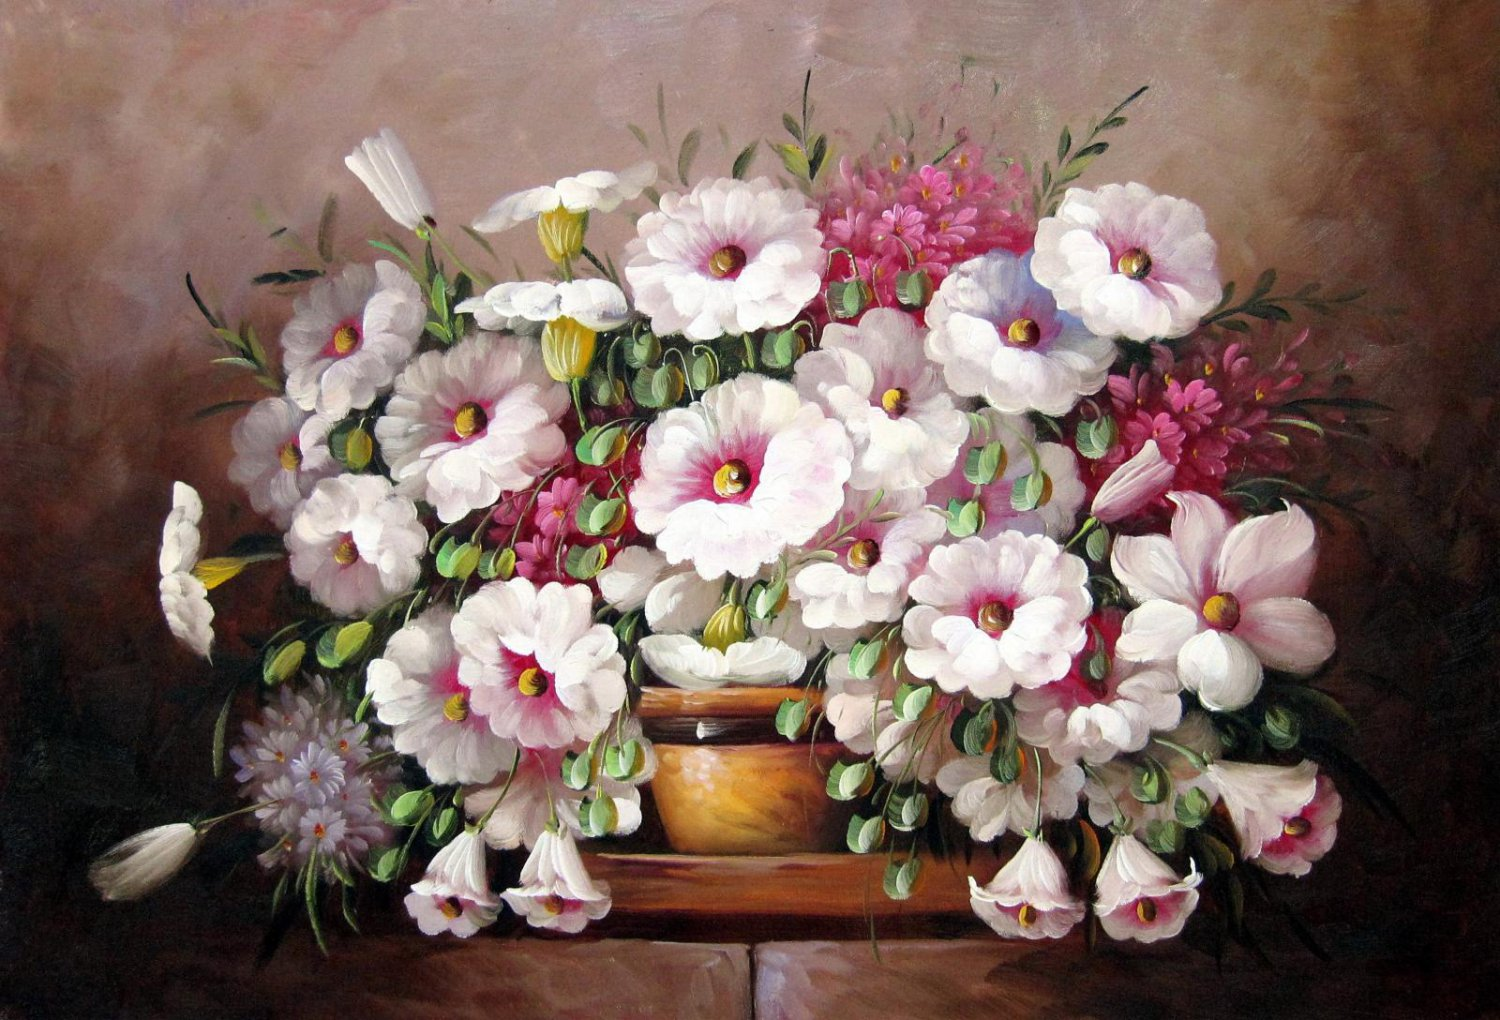 Vase Flower 24x36 in. stretched Oil Painting Canvas Art Wall Decor modern519